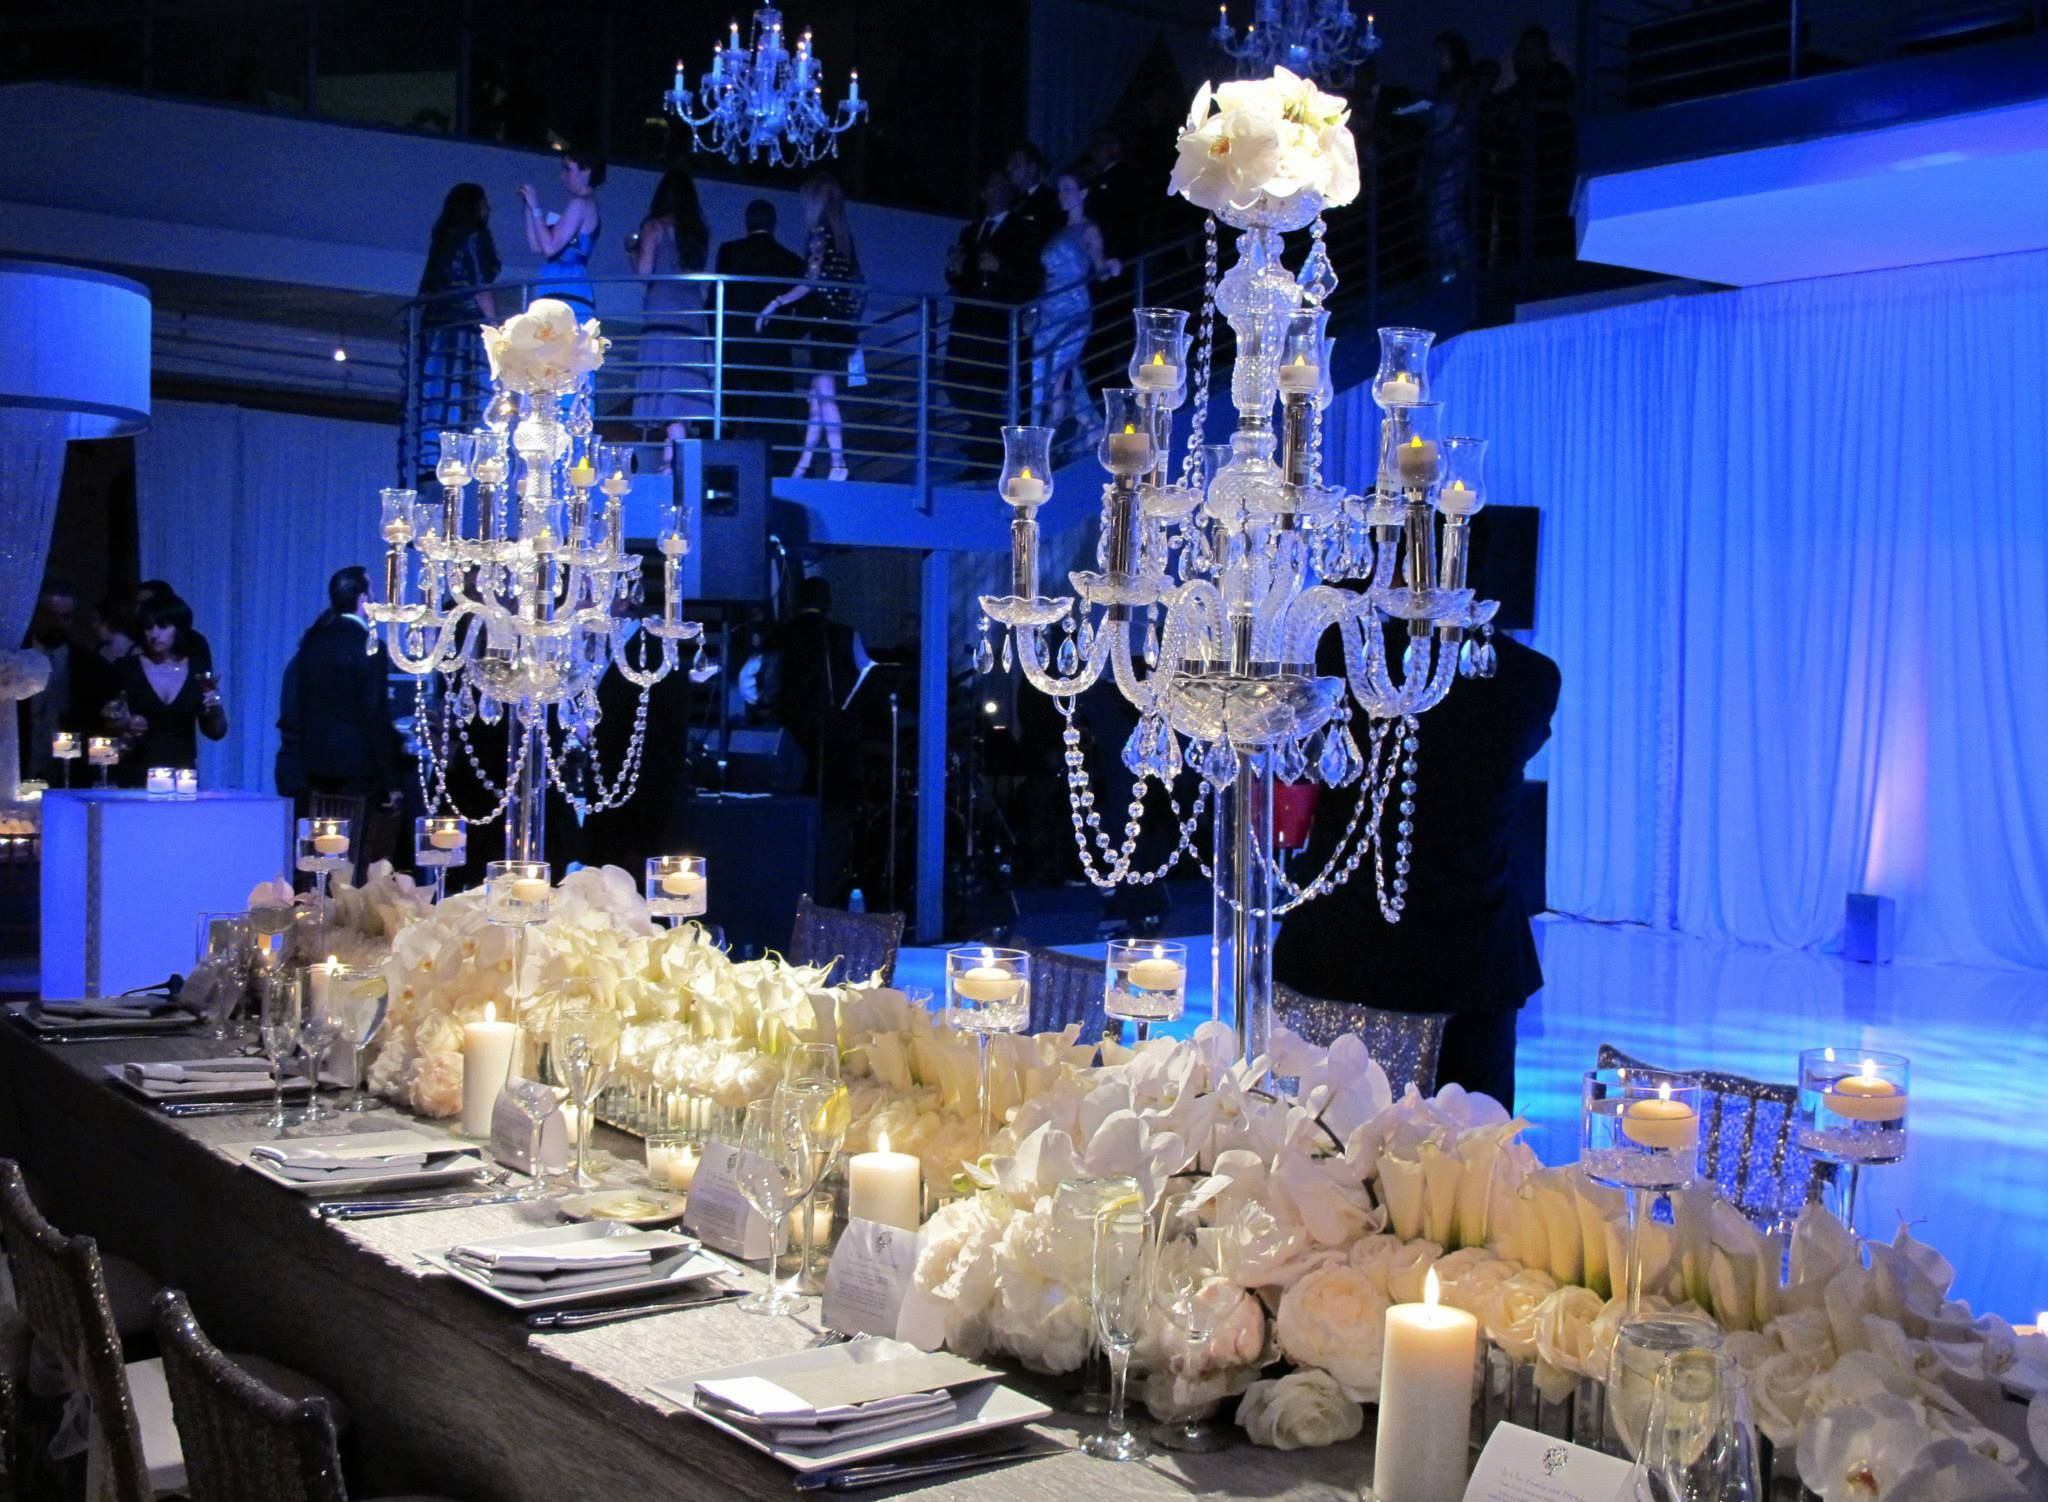 Light blue wedding decoration ideas  Wow Love these chandeliers at this blue uplighting wedding